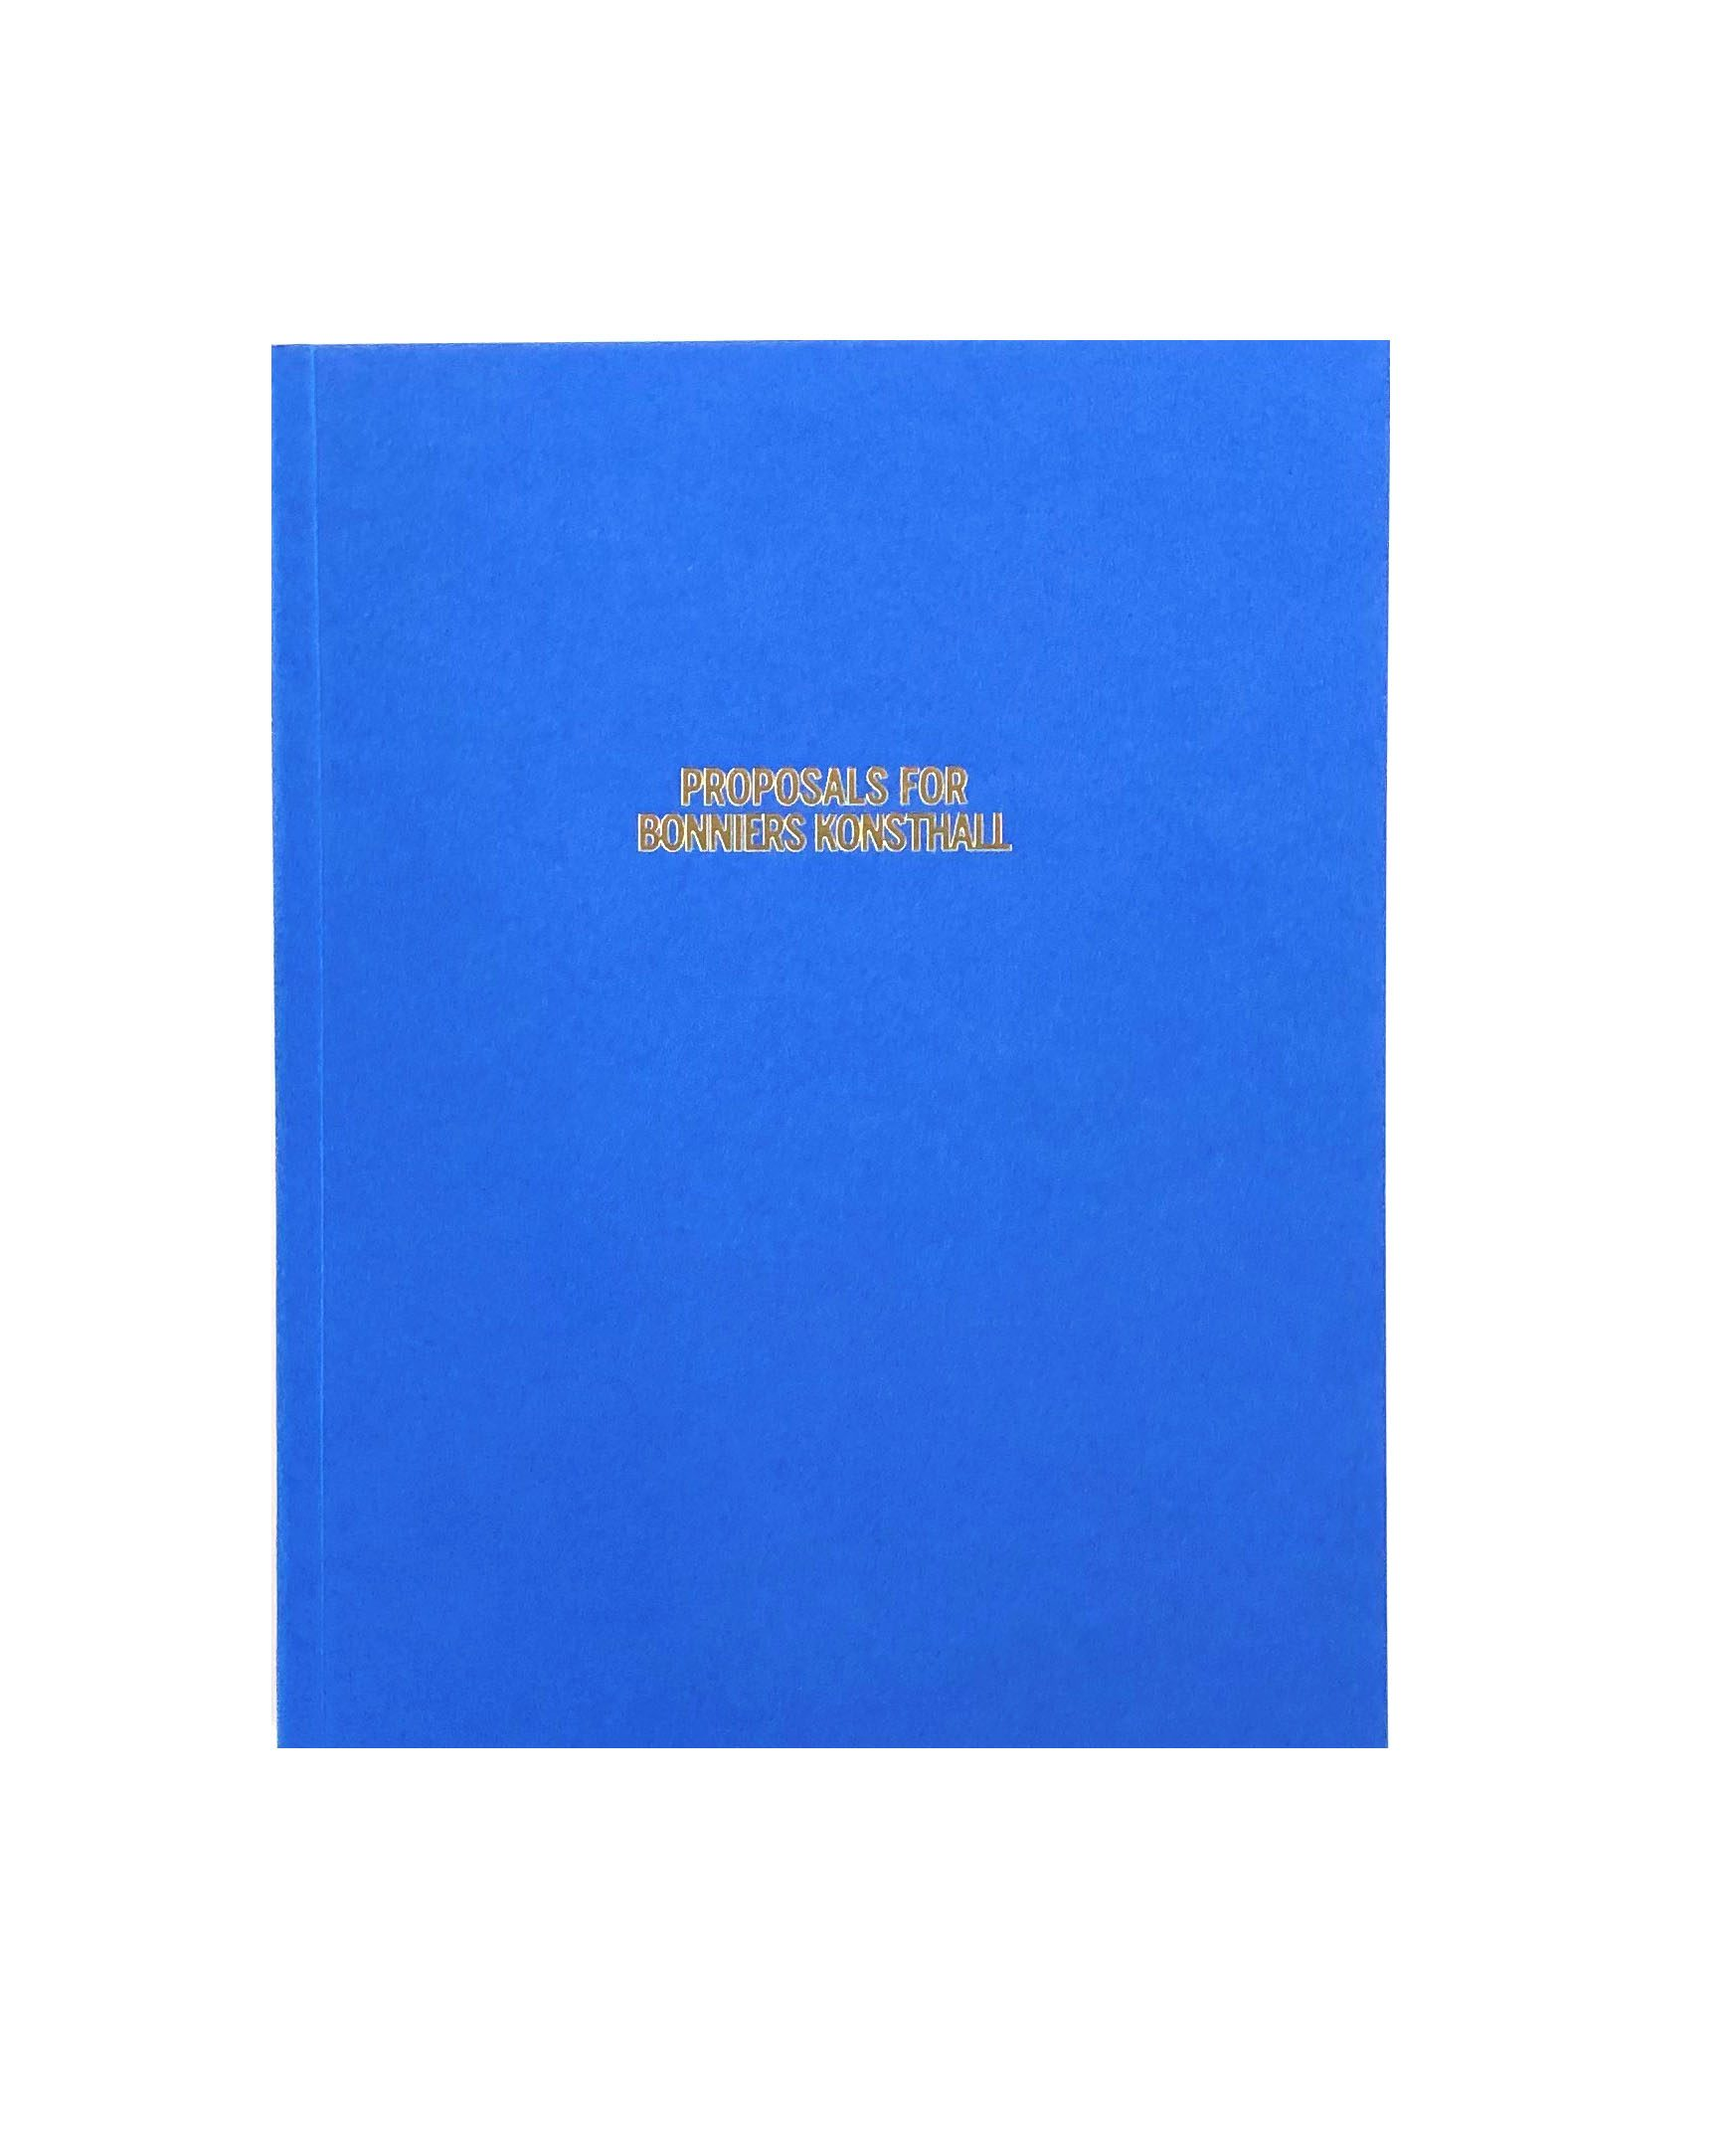 Proposals for Bonniers Konsthall